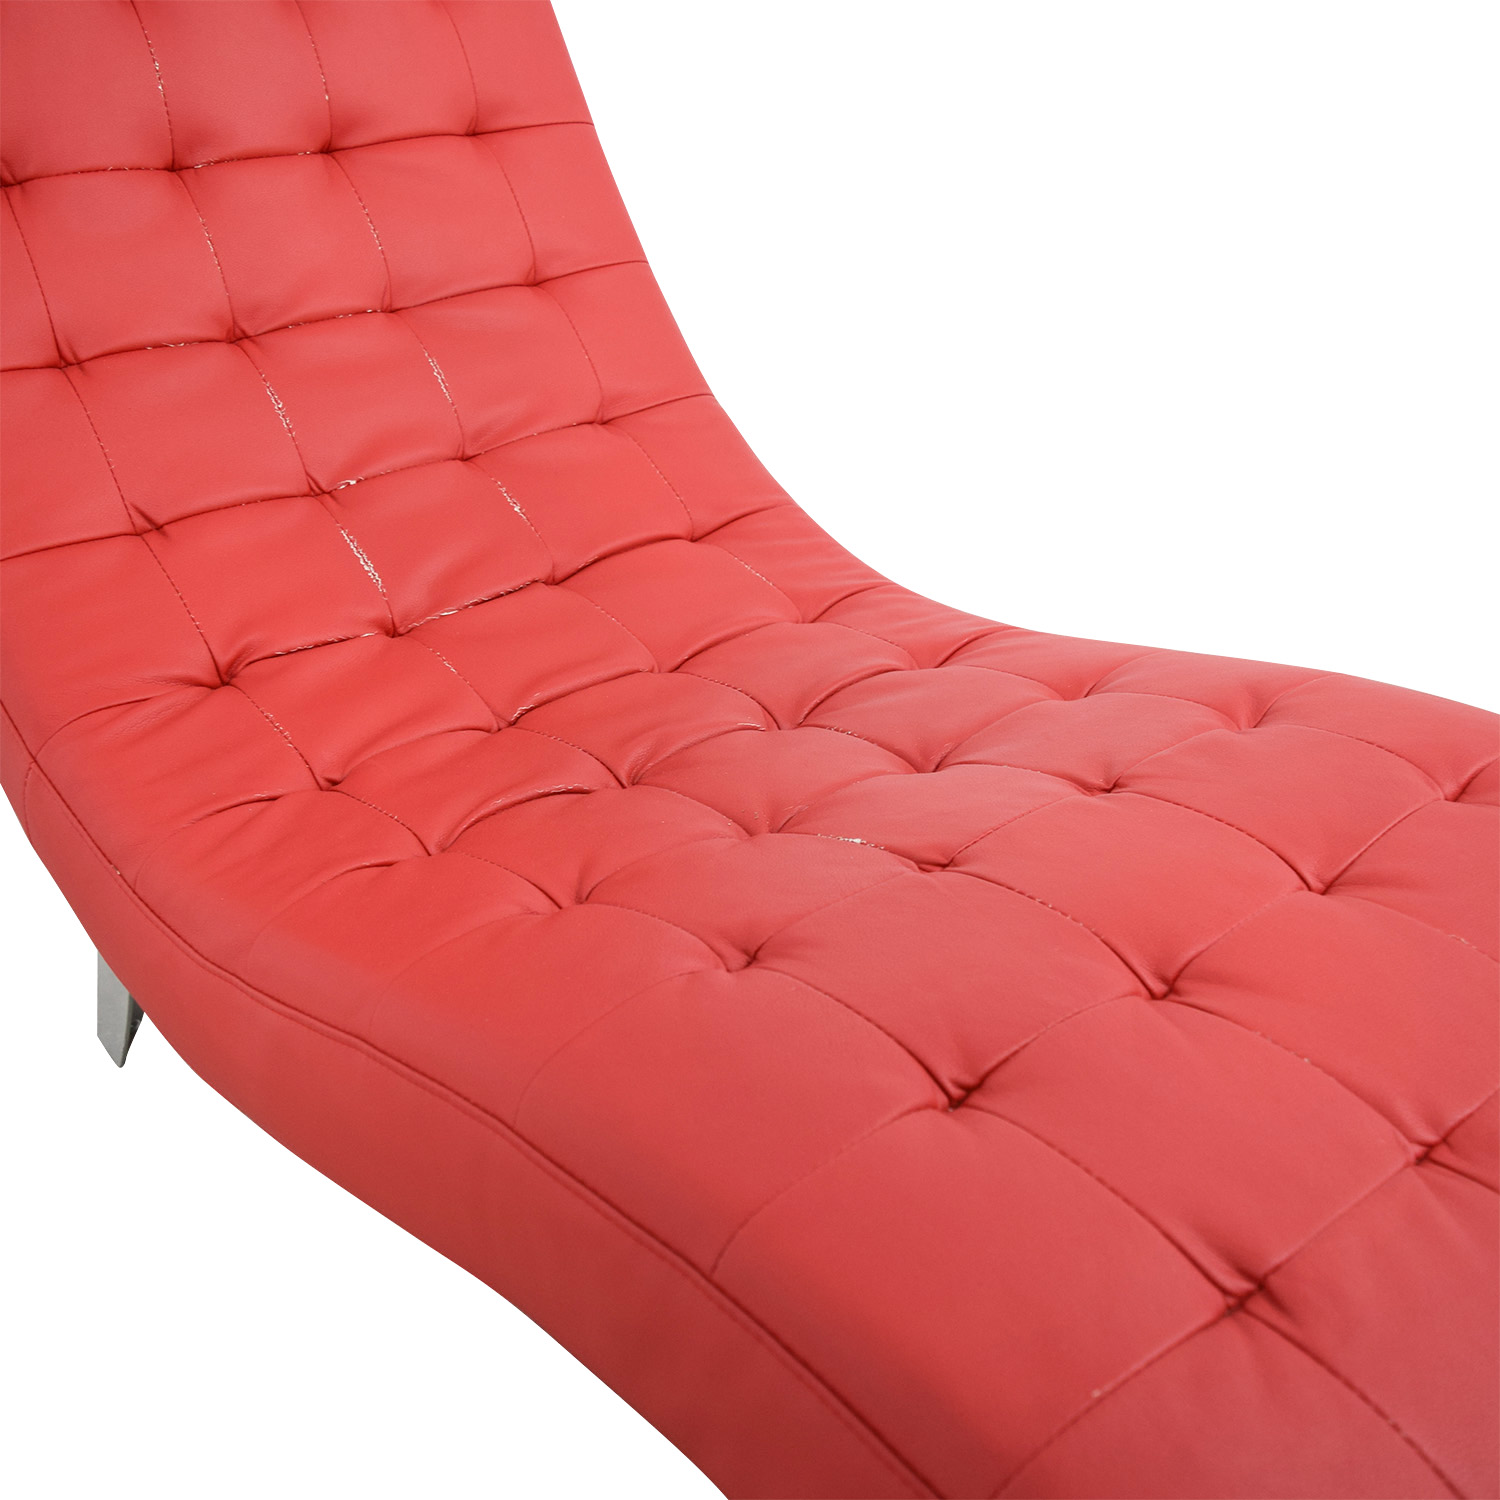 Red Tufted Chaise Lounge